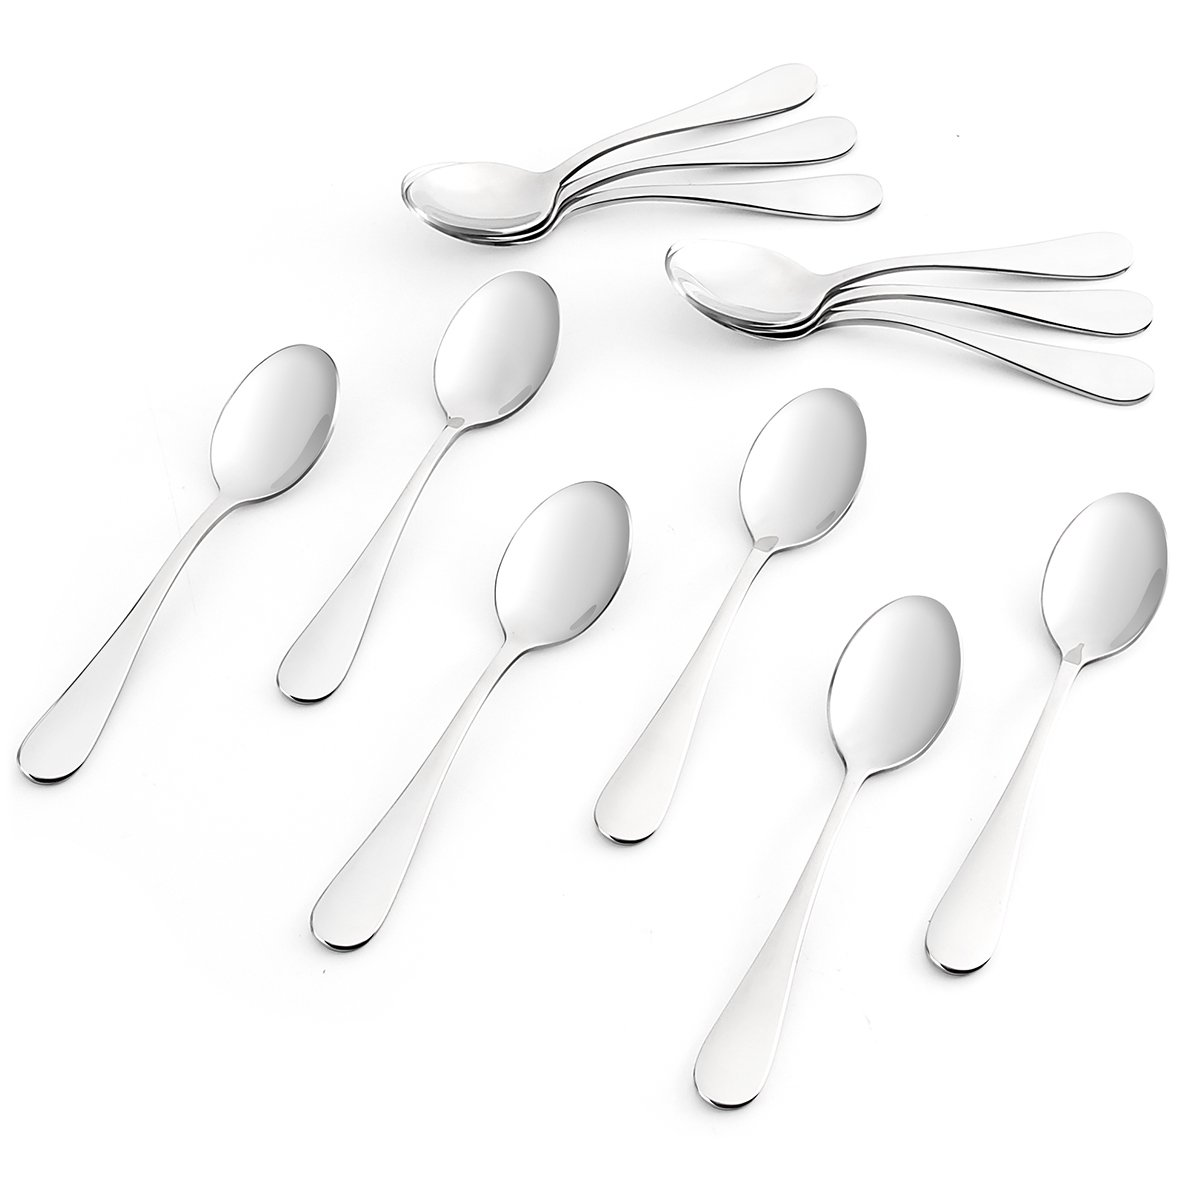 Sweese 3703 Teaspoons, Espresso Spoons, Set of 12 - Heavy-duty Stainless Steel, Restaurant & Hotel Quality, 5.5 inches